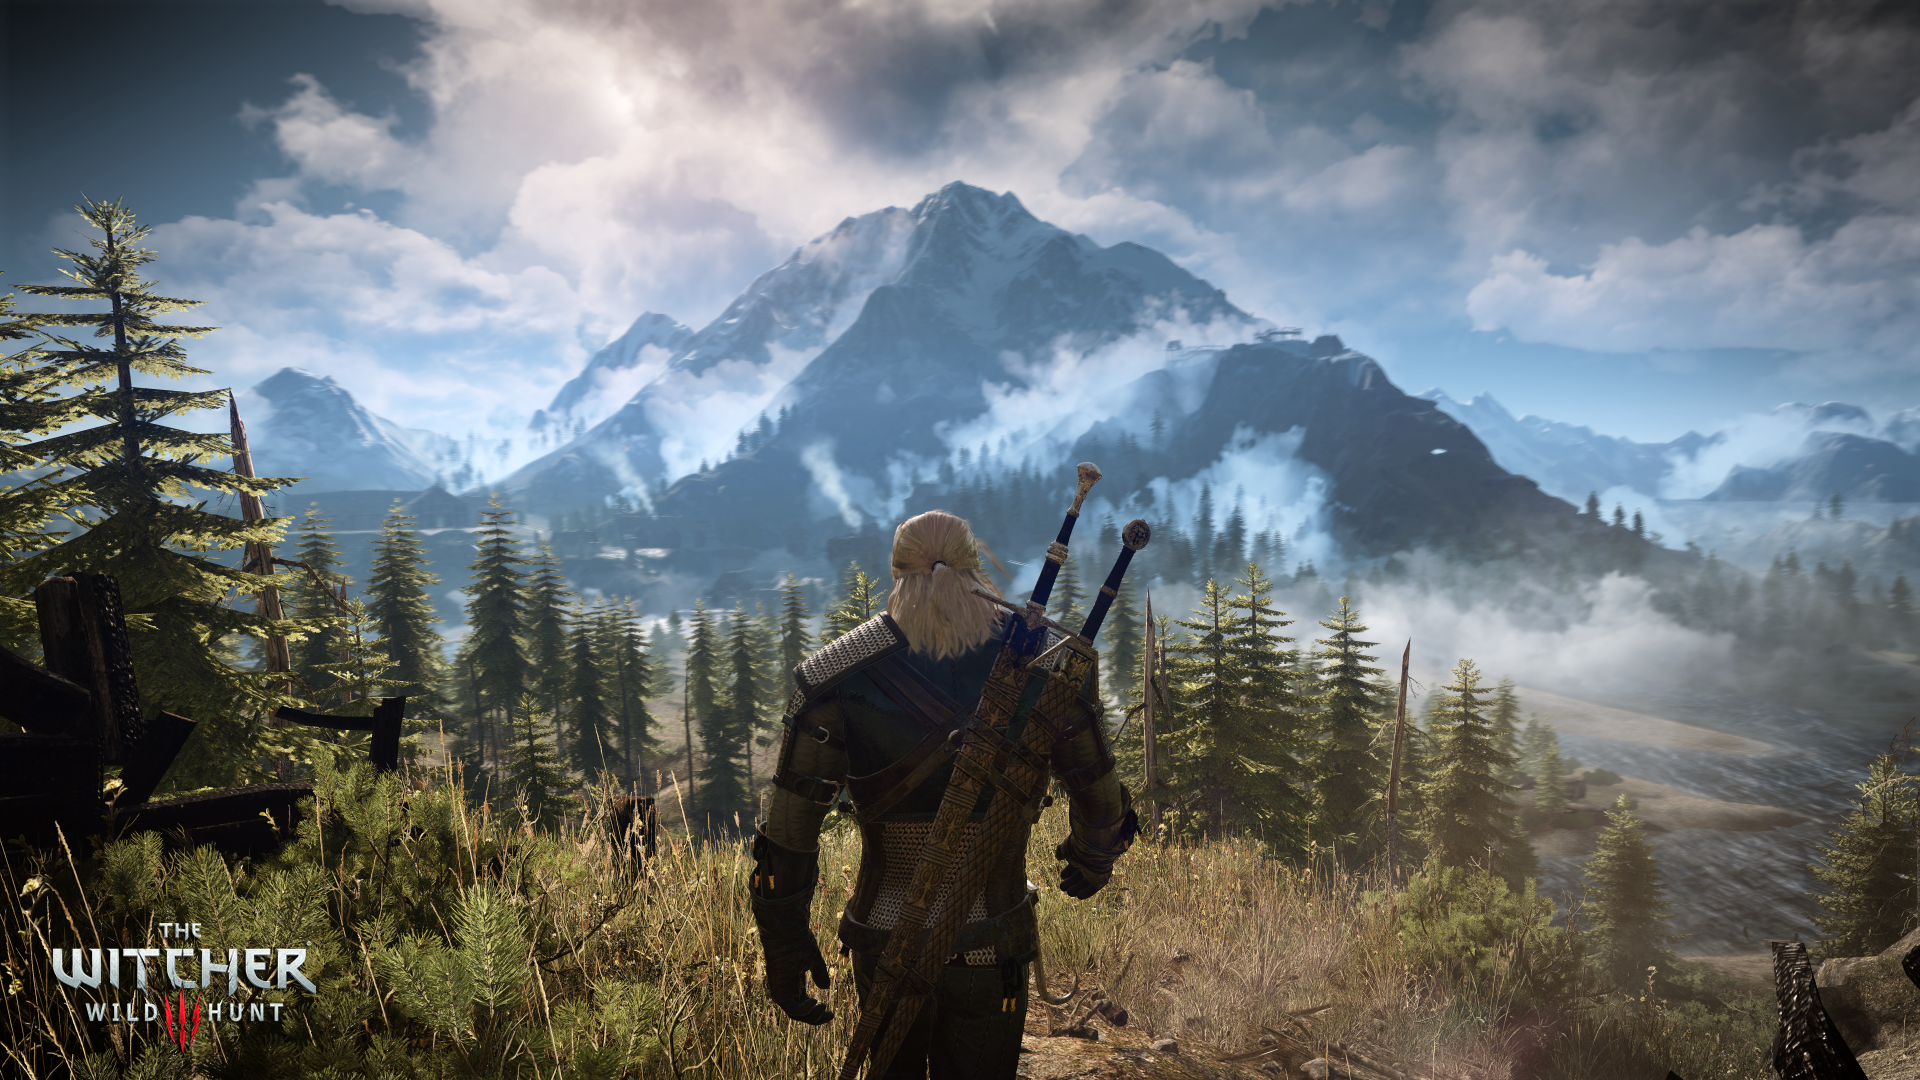 Gir bort The Witcher 3 på PC gratis